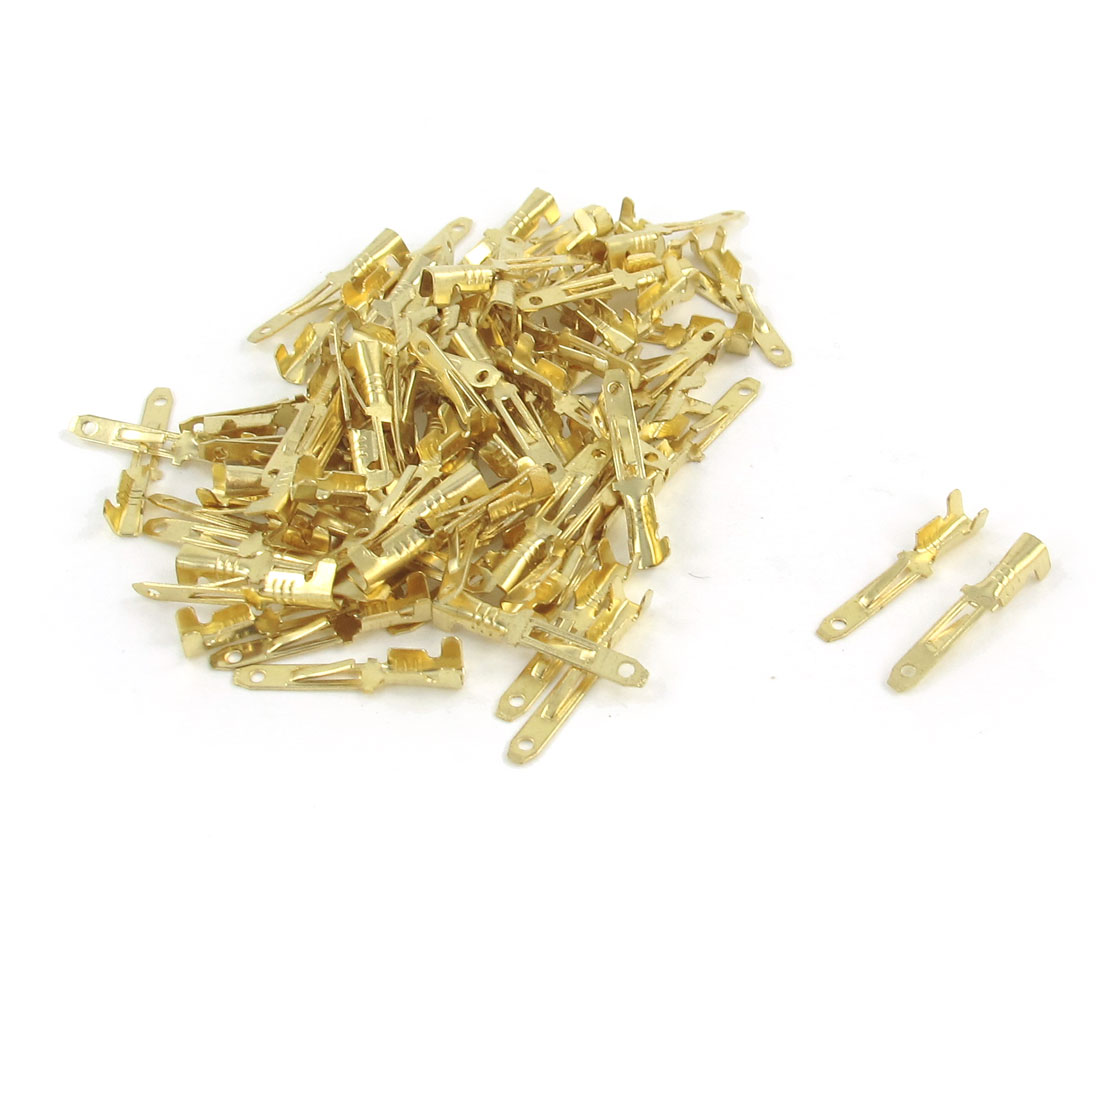 100 Pcs Gold Tone 2mm Wide Male Spade Crimp Terminal Connectors